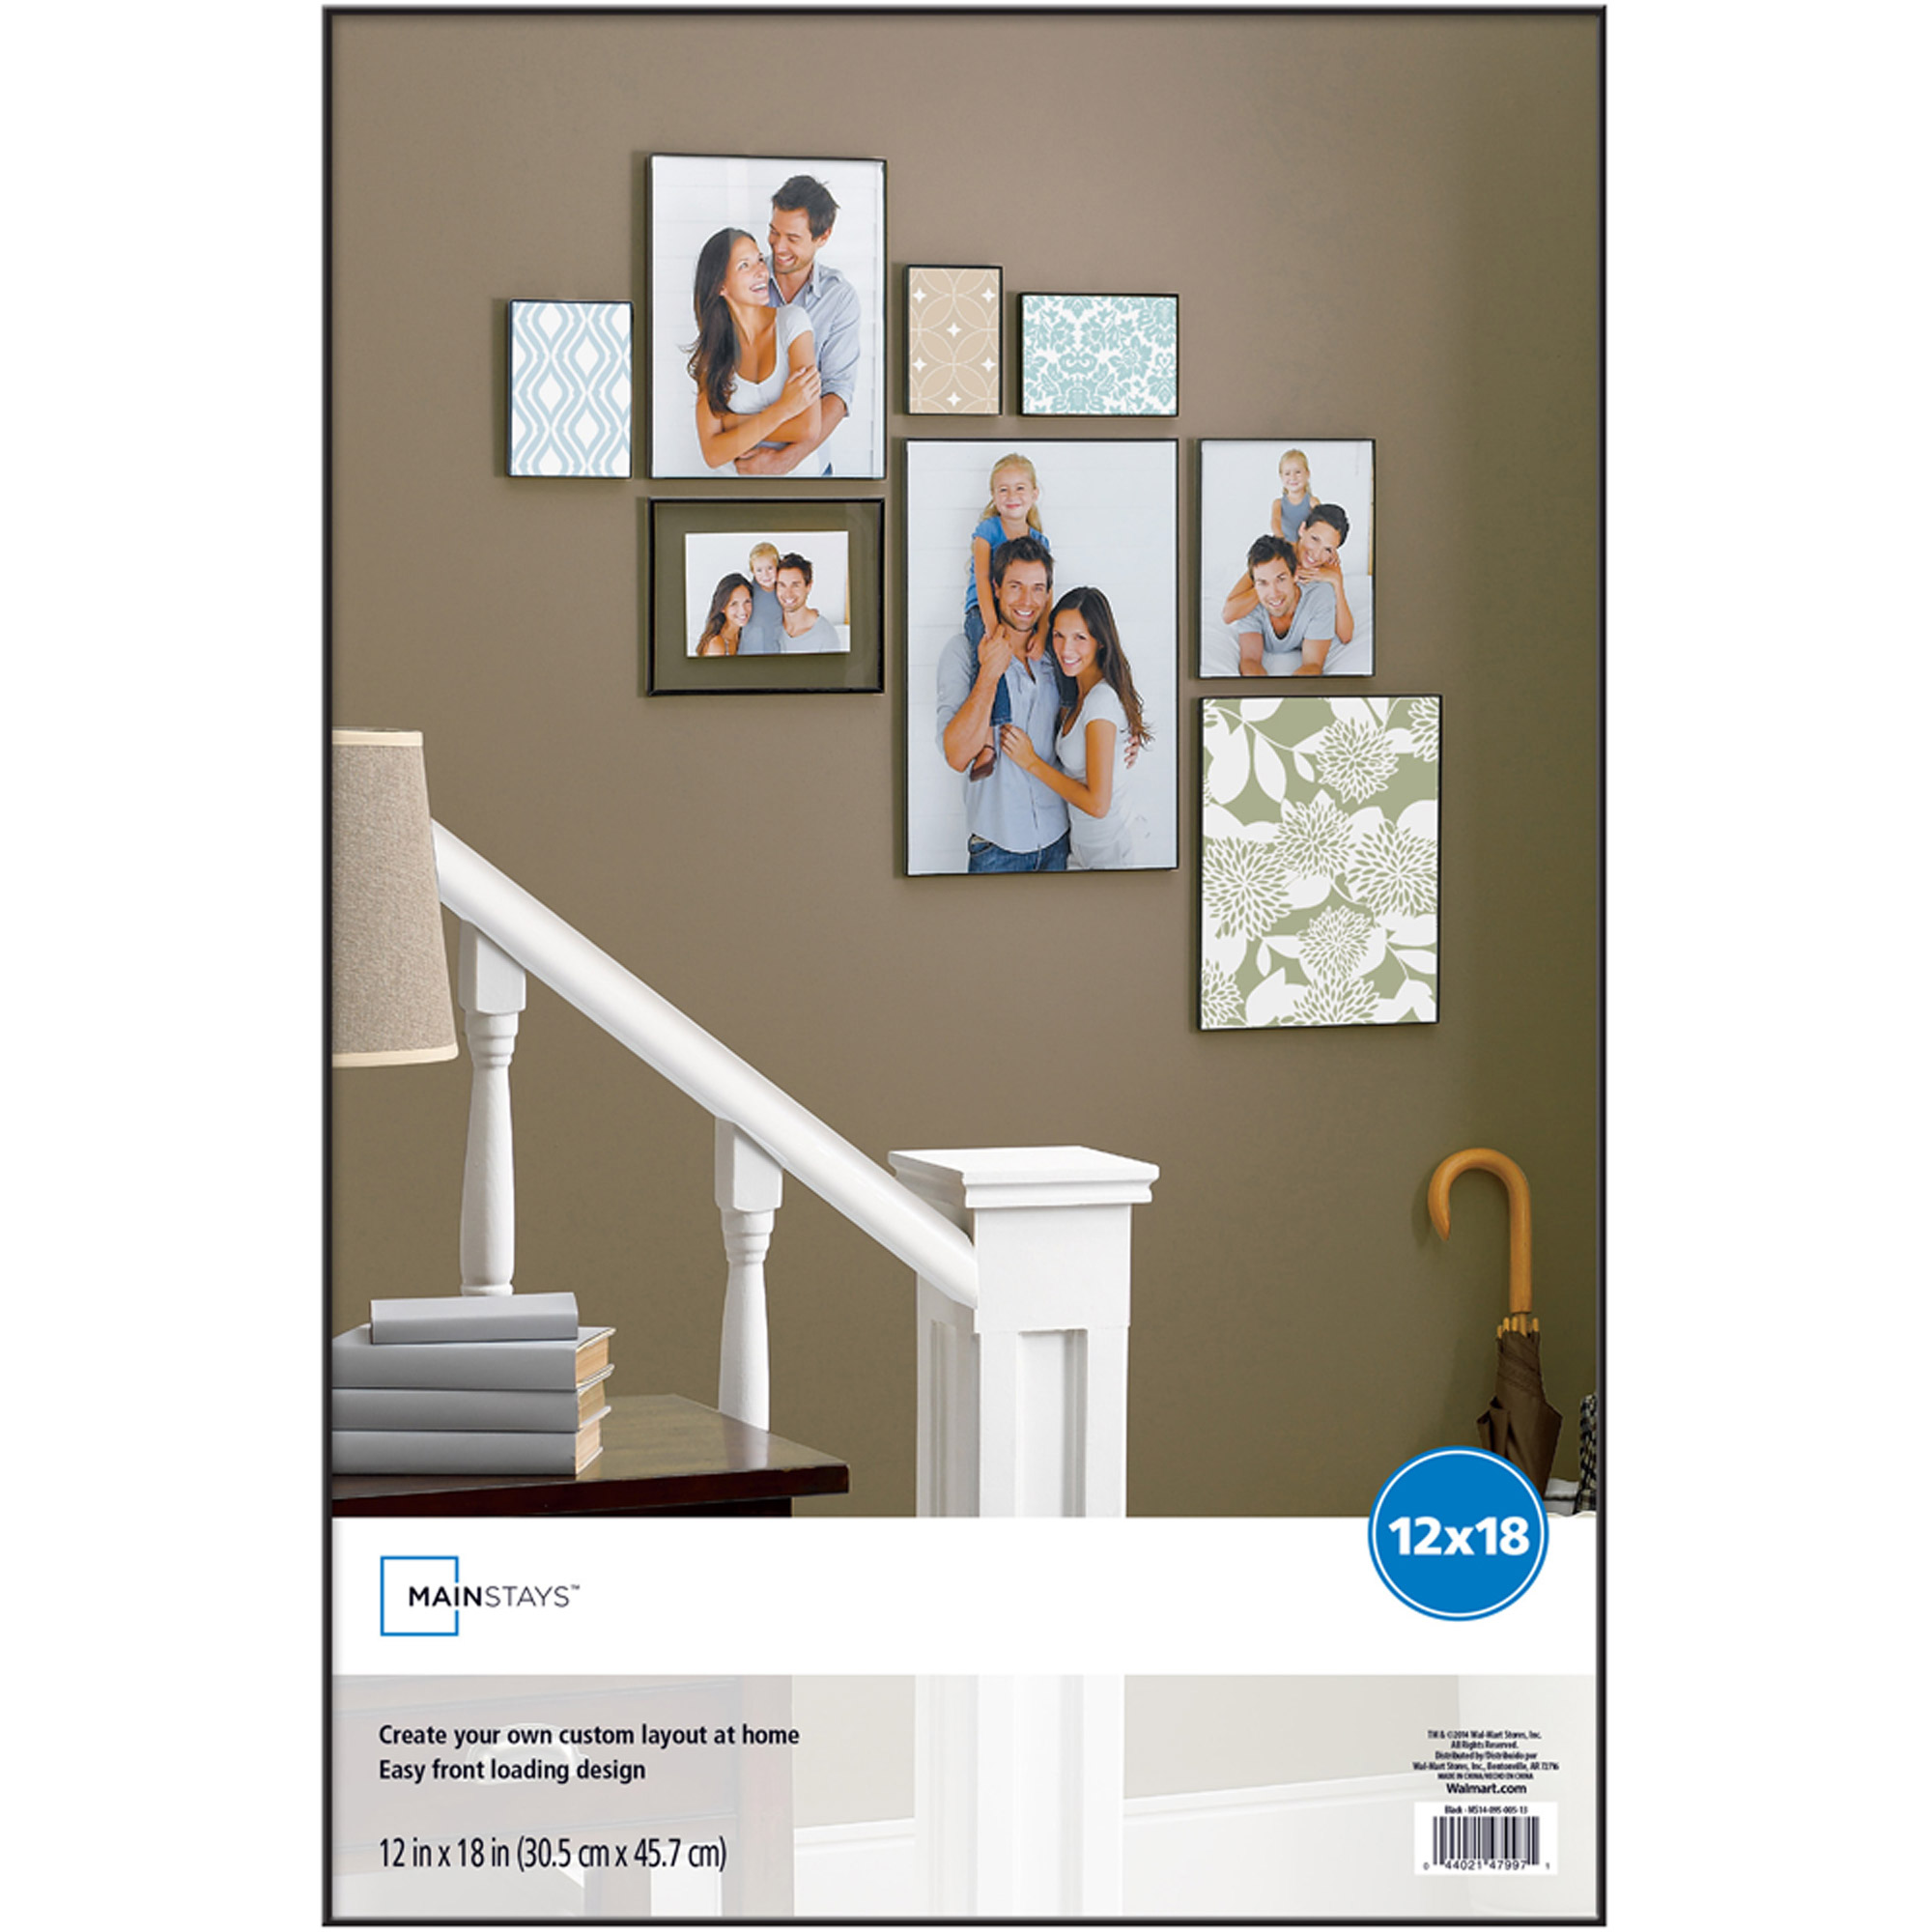 "Mainstays 12"" x 18"" Format Picture Frame, Black Finish"